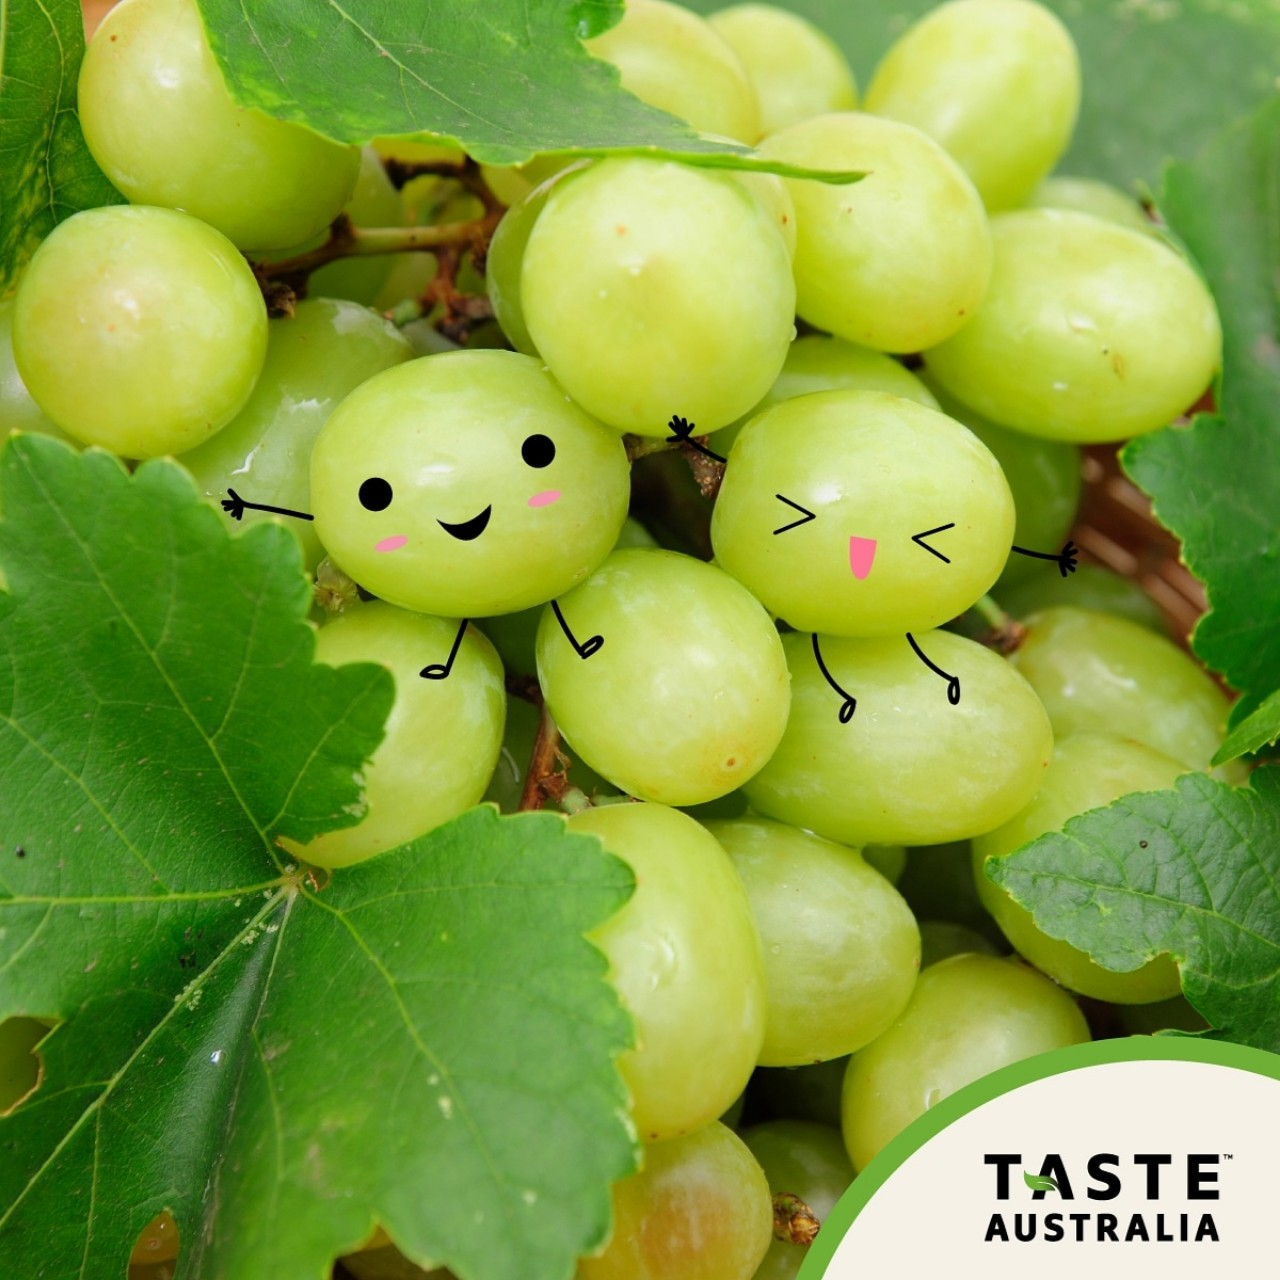 Have A Sweet Day With Australian Grapes!